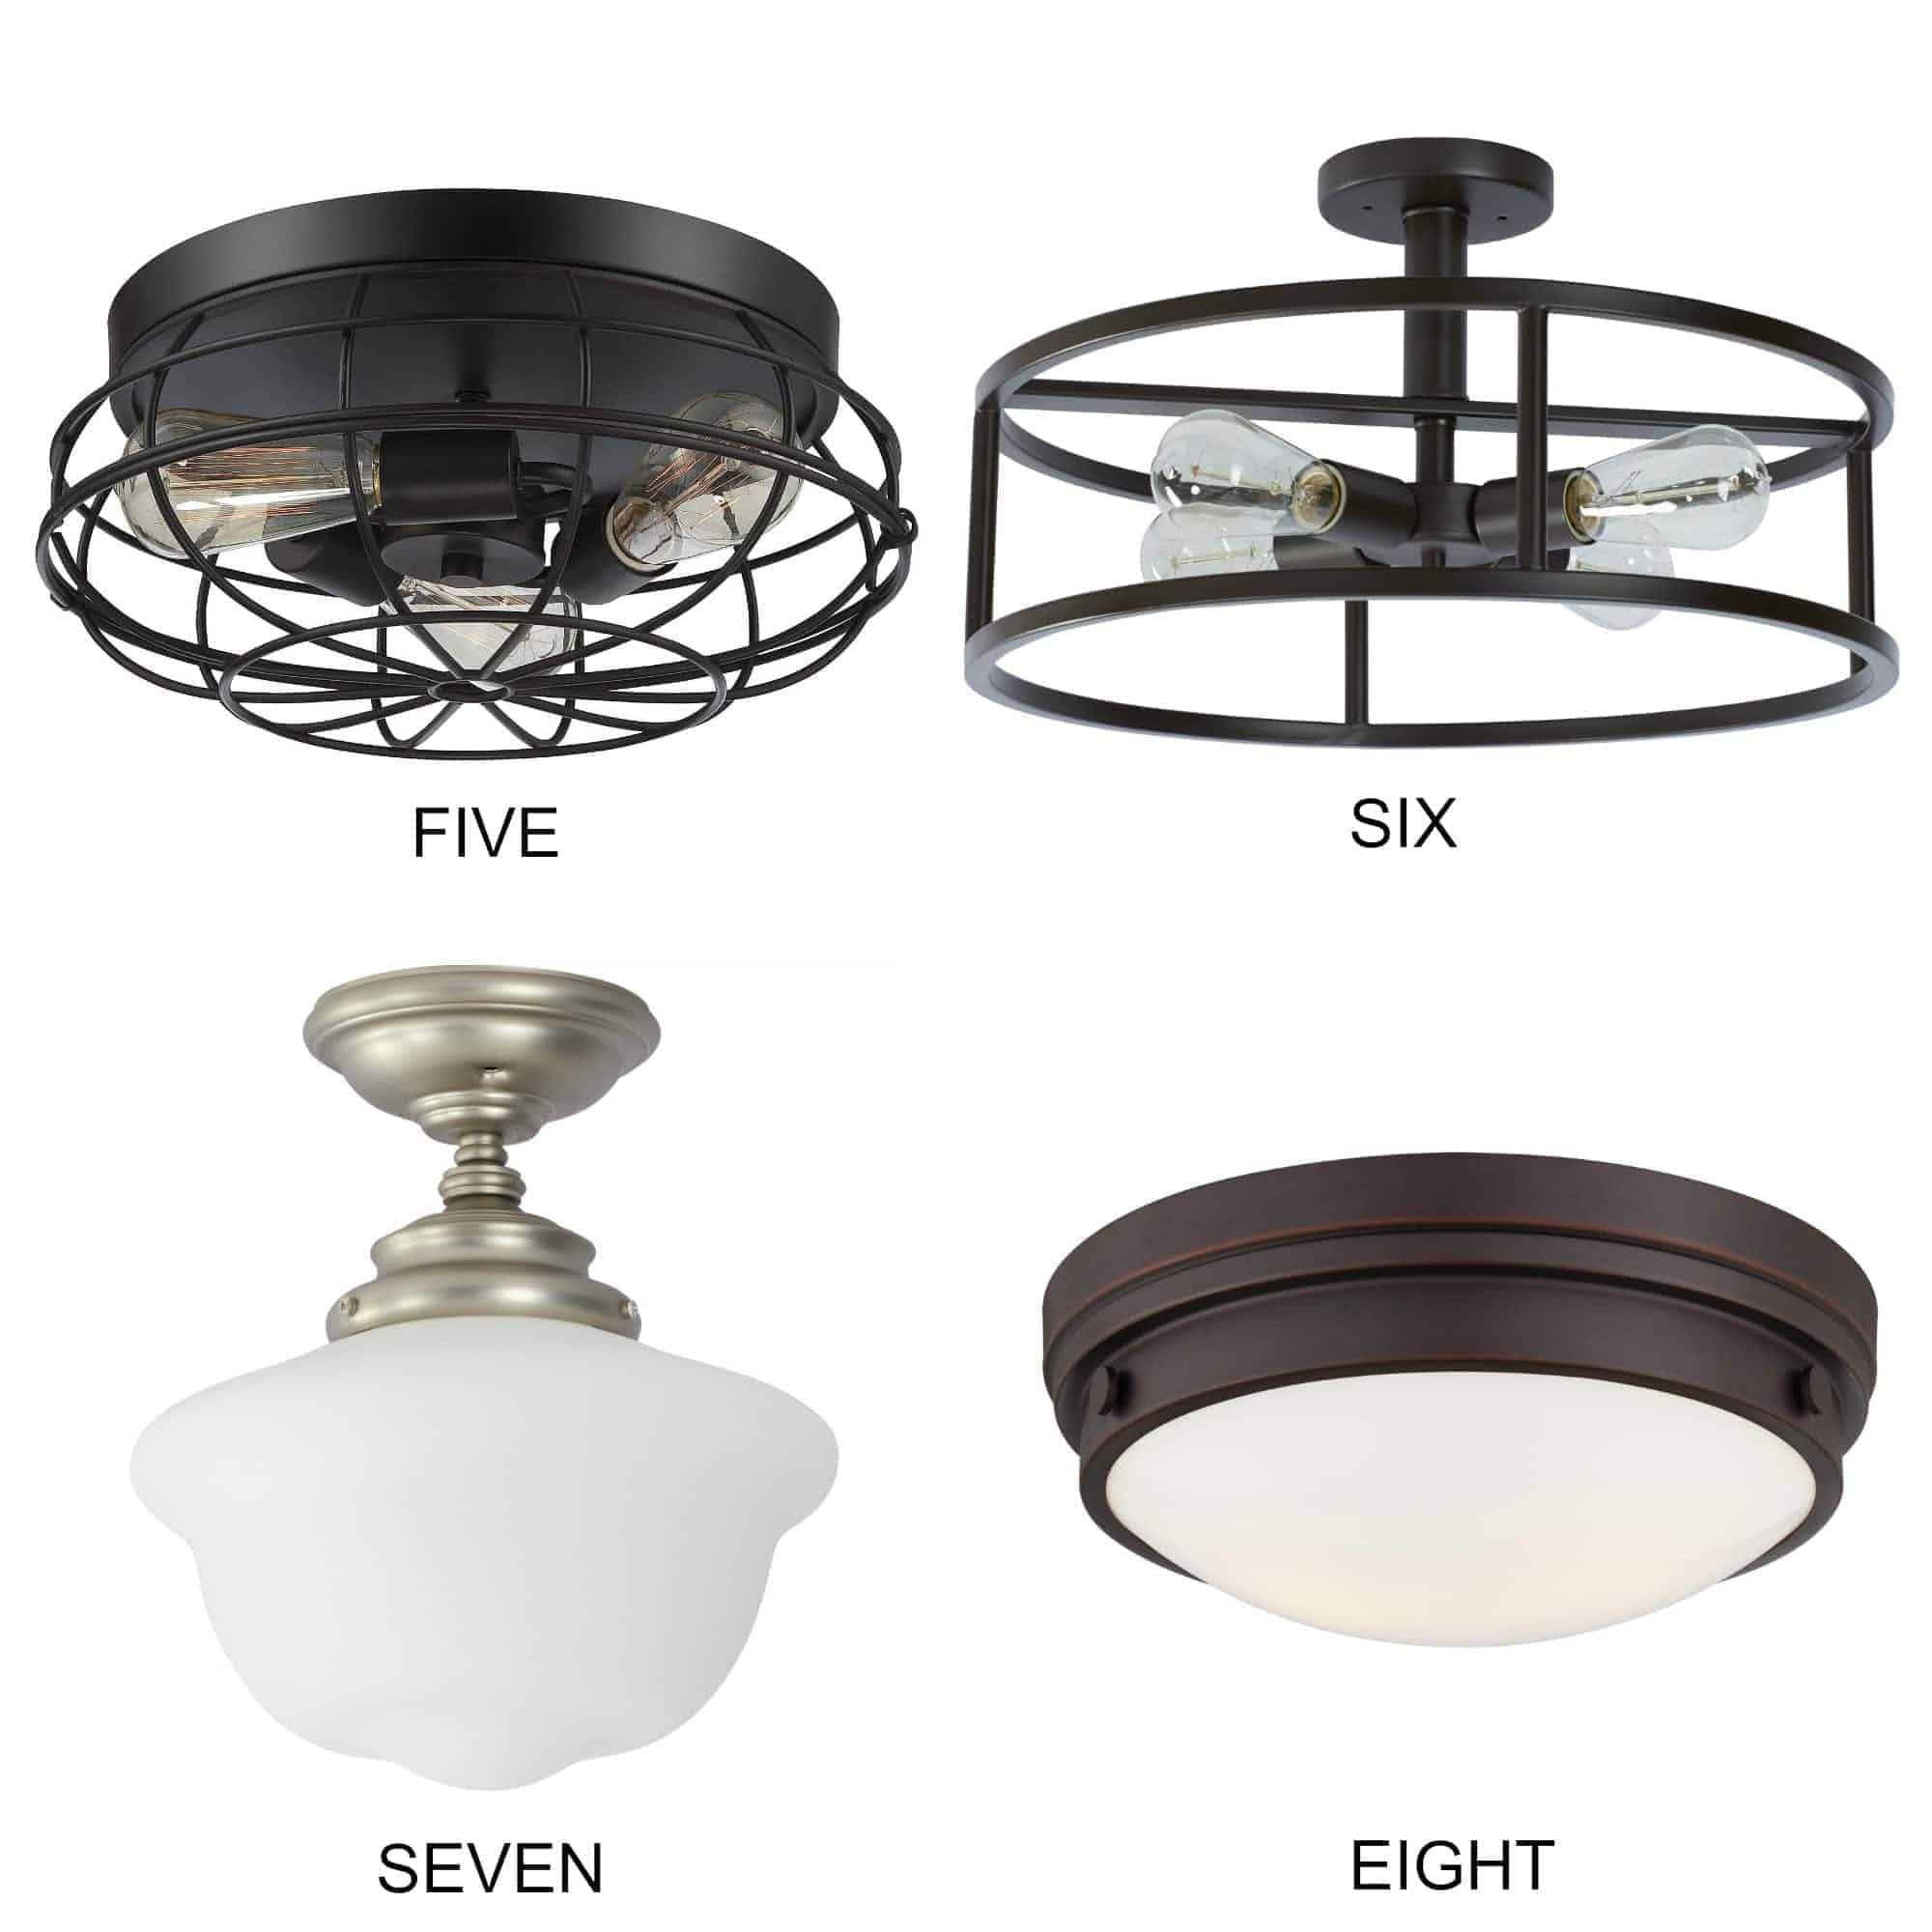 8 Flush Mount Kitchen Lighting Fixture Ideas That Will Add Farmhouse Style To Your E